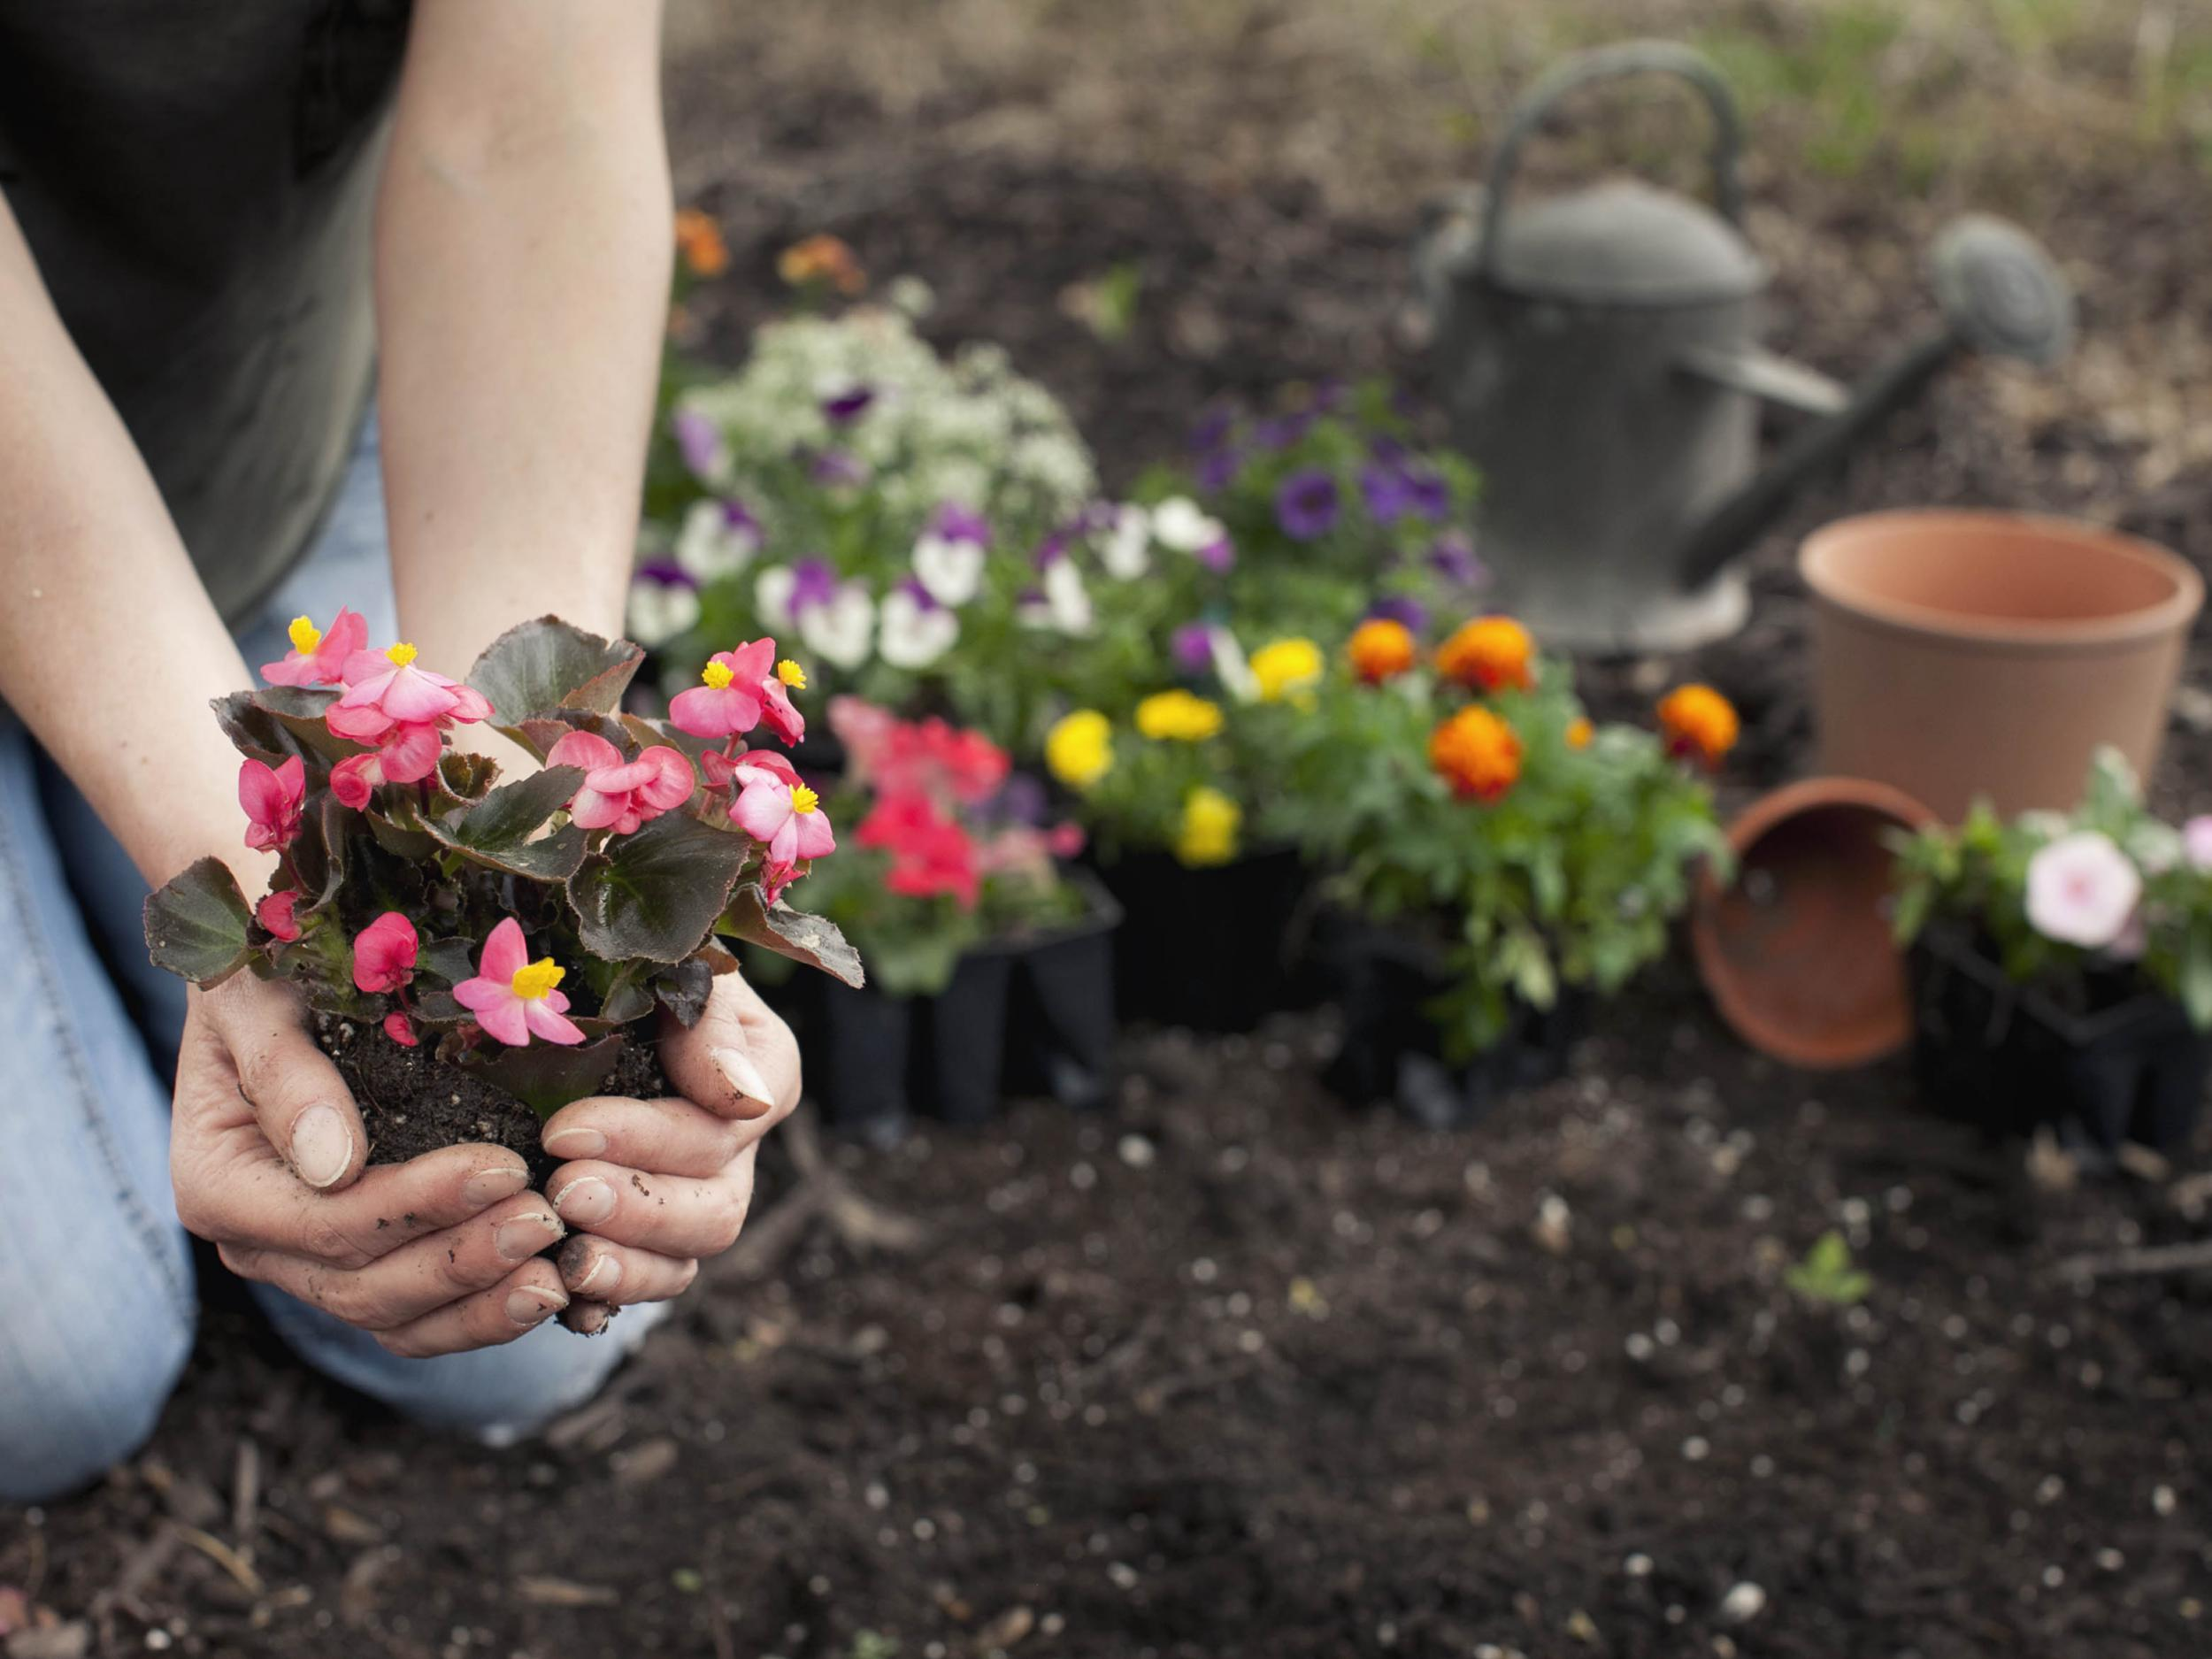 Garden Centres The Plants And Flowers To Buy Now In Time For The Summer The Independent